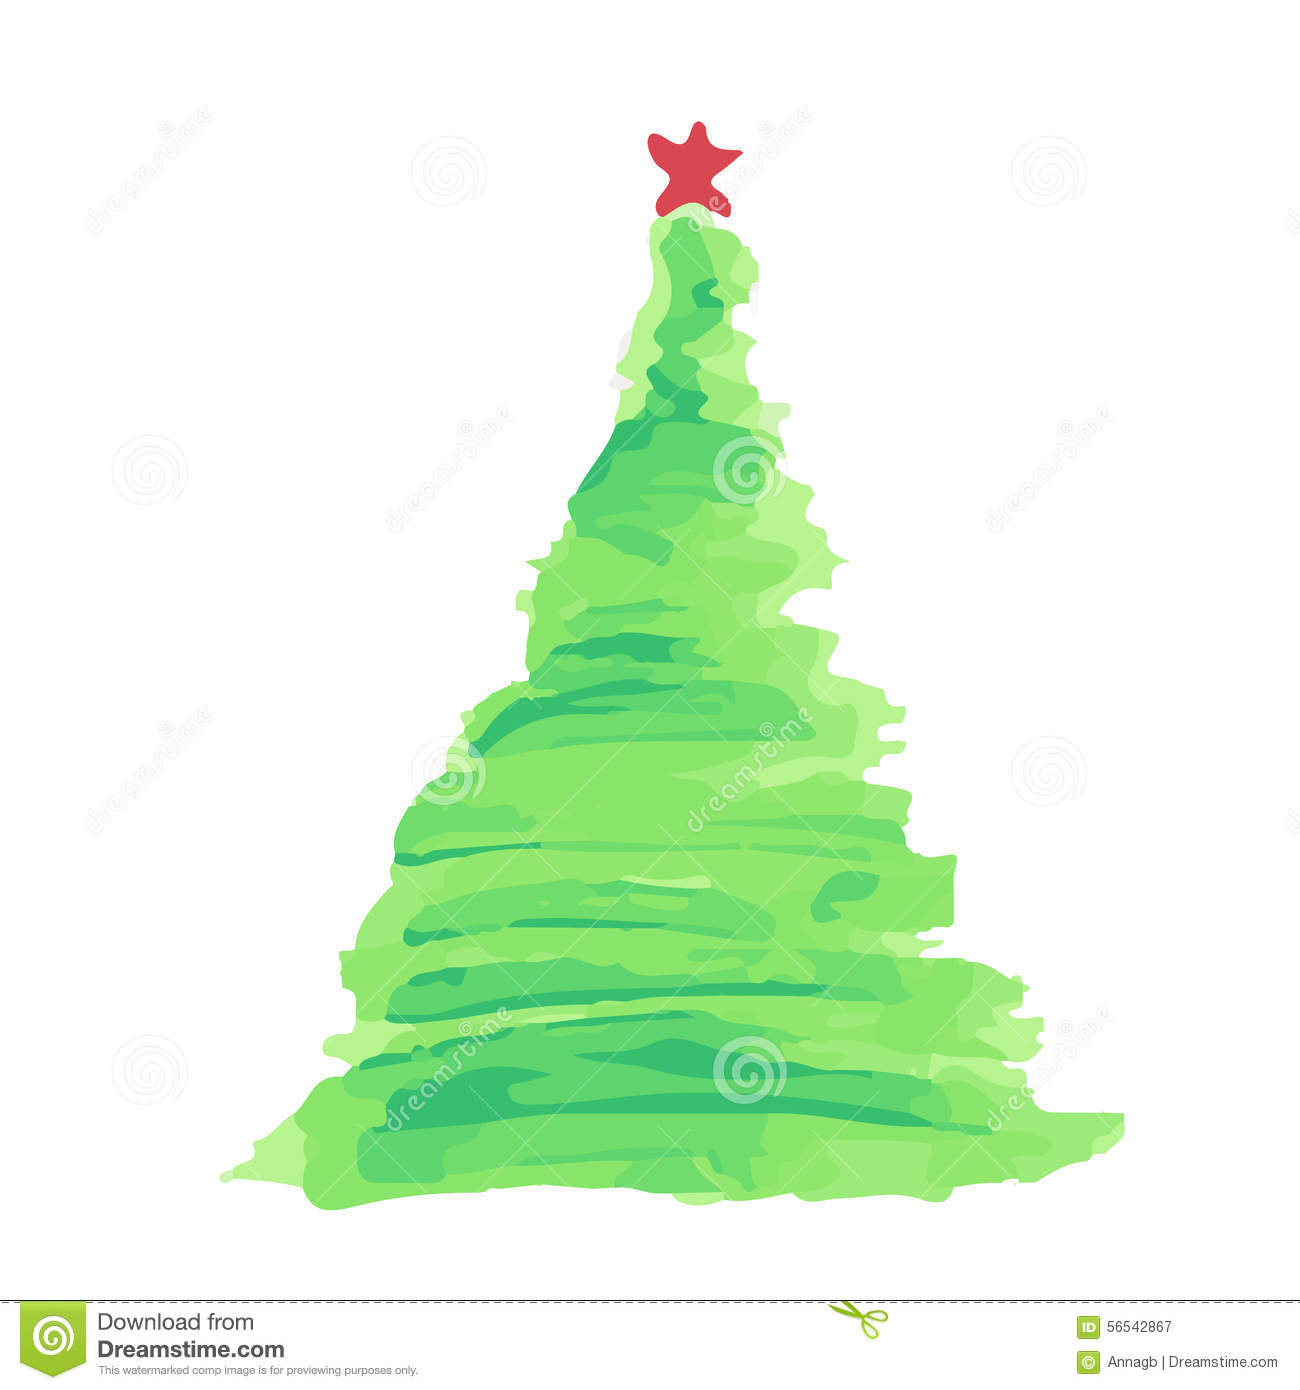 Christmas Tree Watercolor Vector Stock Vector - Image: 56542867